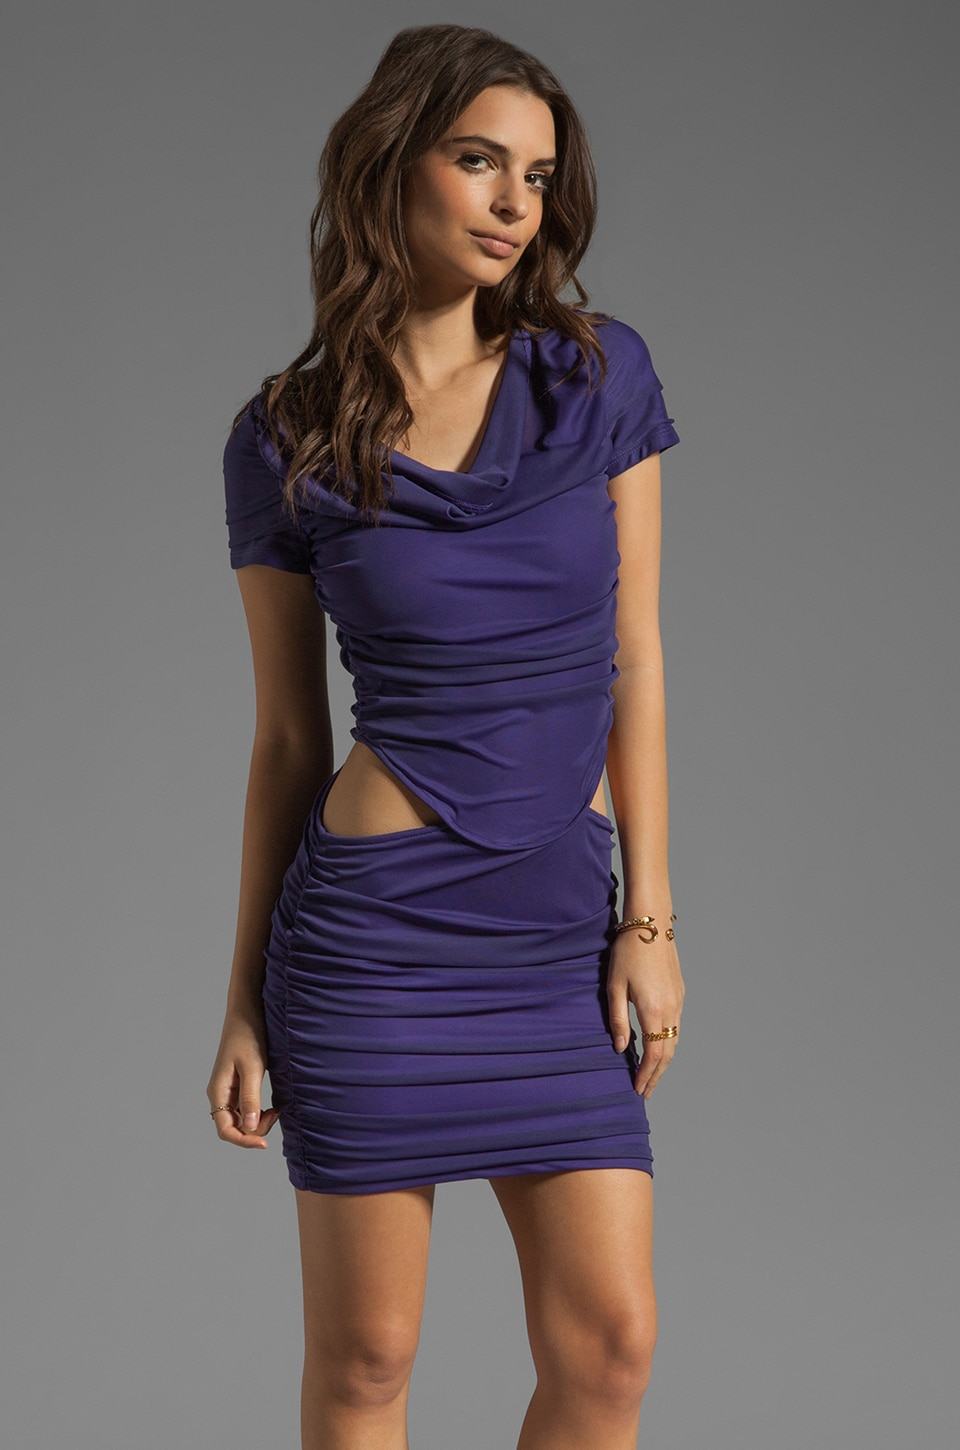 Boulee Blake Short Sleeve Cut Out Dress in Dark Purple